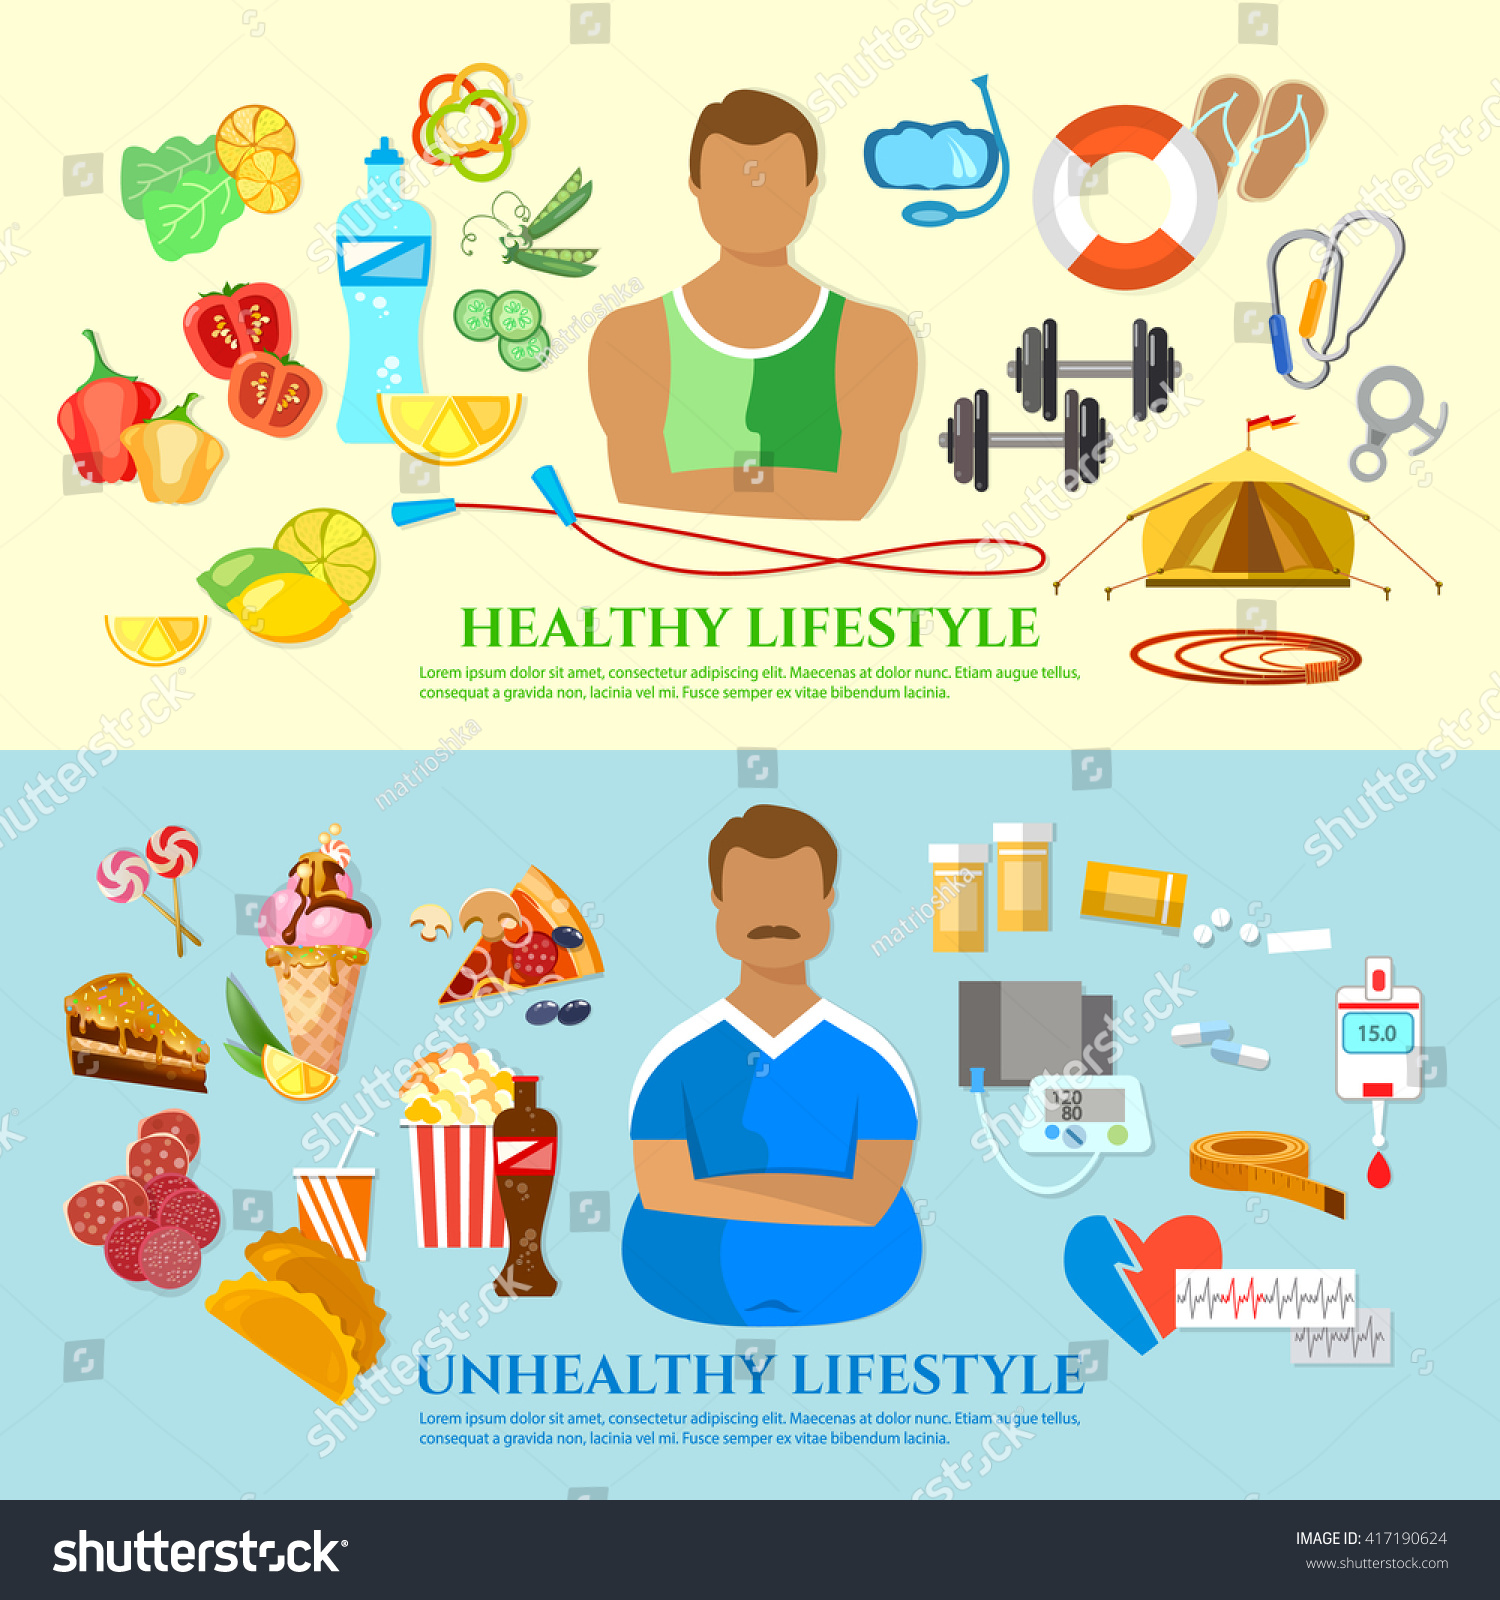 essay on healthy lifestyle diet Healthy lifestyle vs fad diets lynda schreiber com/170 june 2, 2014 linda boyer healthy lifestyle vs fad diets introduction i calorie count a healthy.